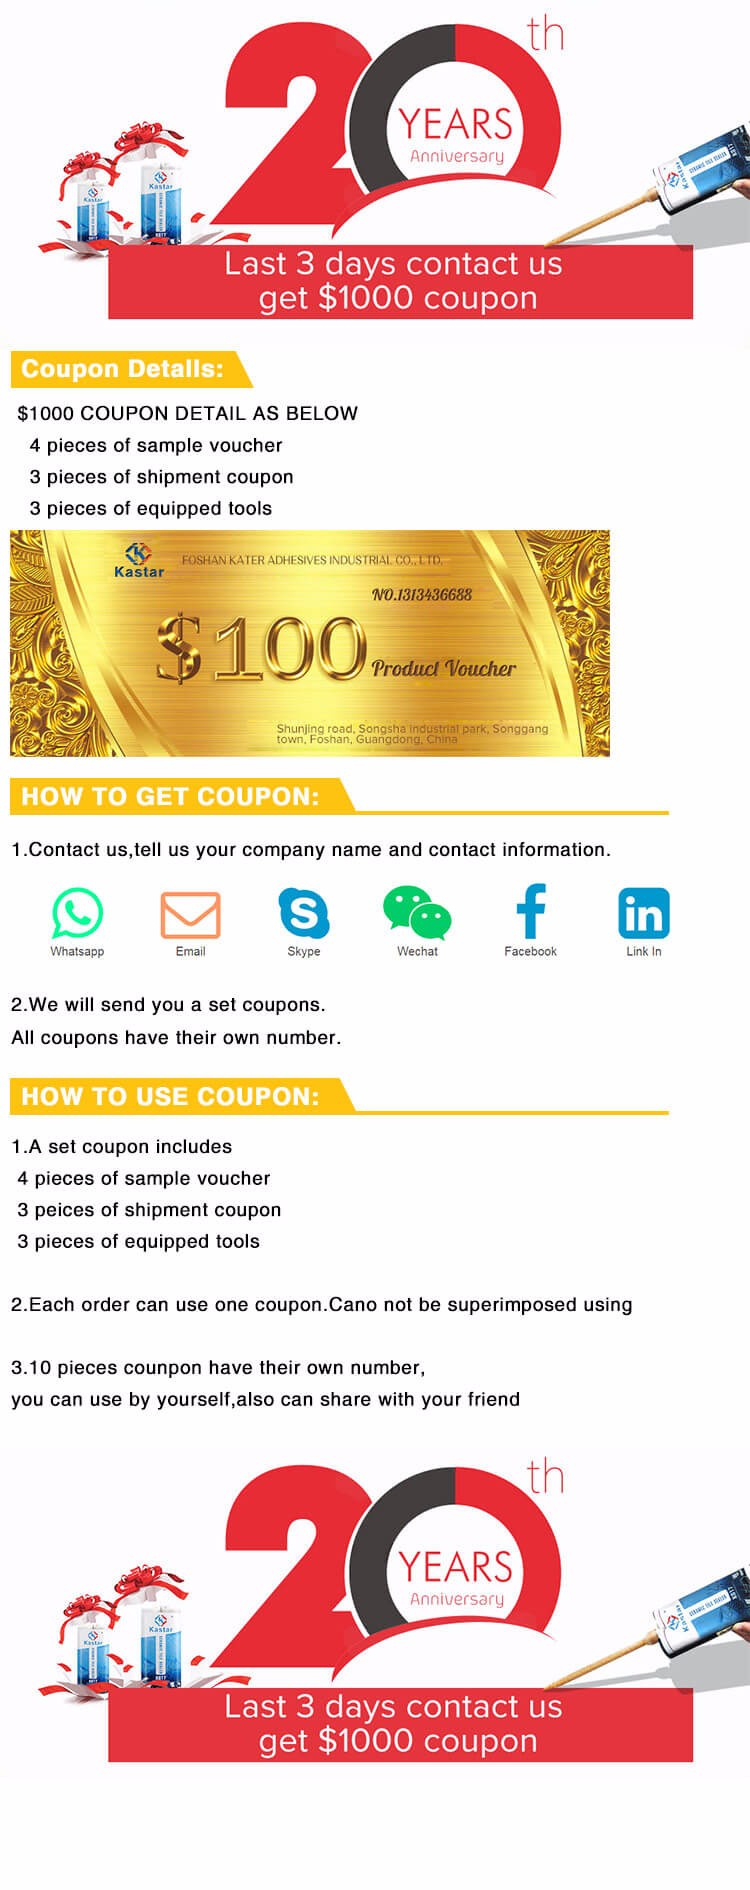 Contact us get $1000 coupon